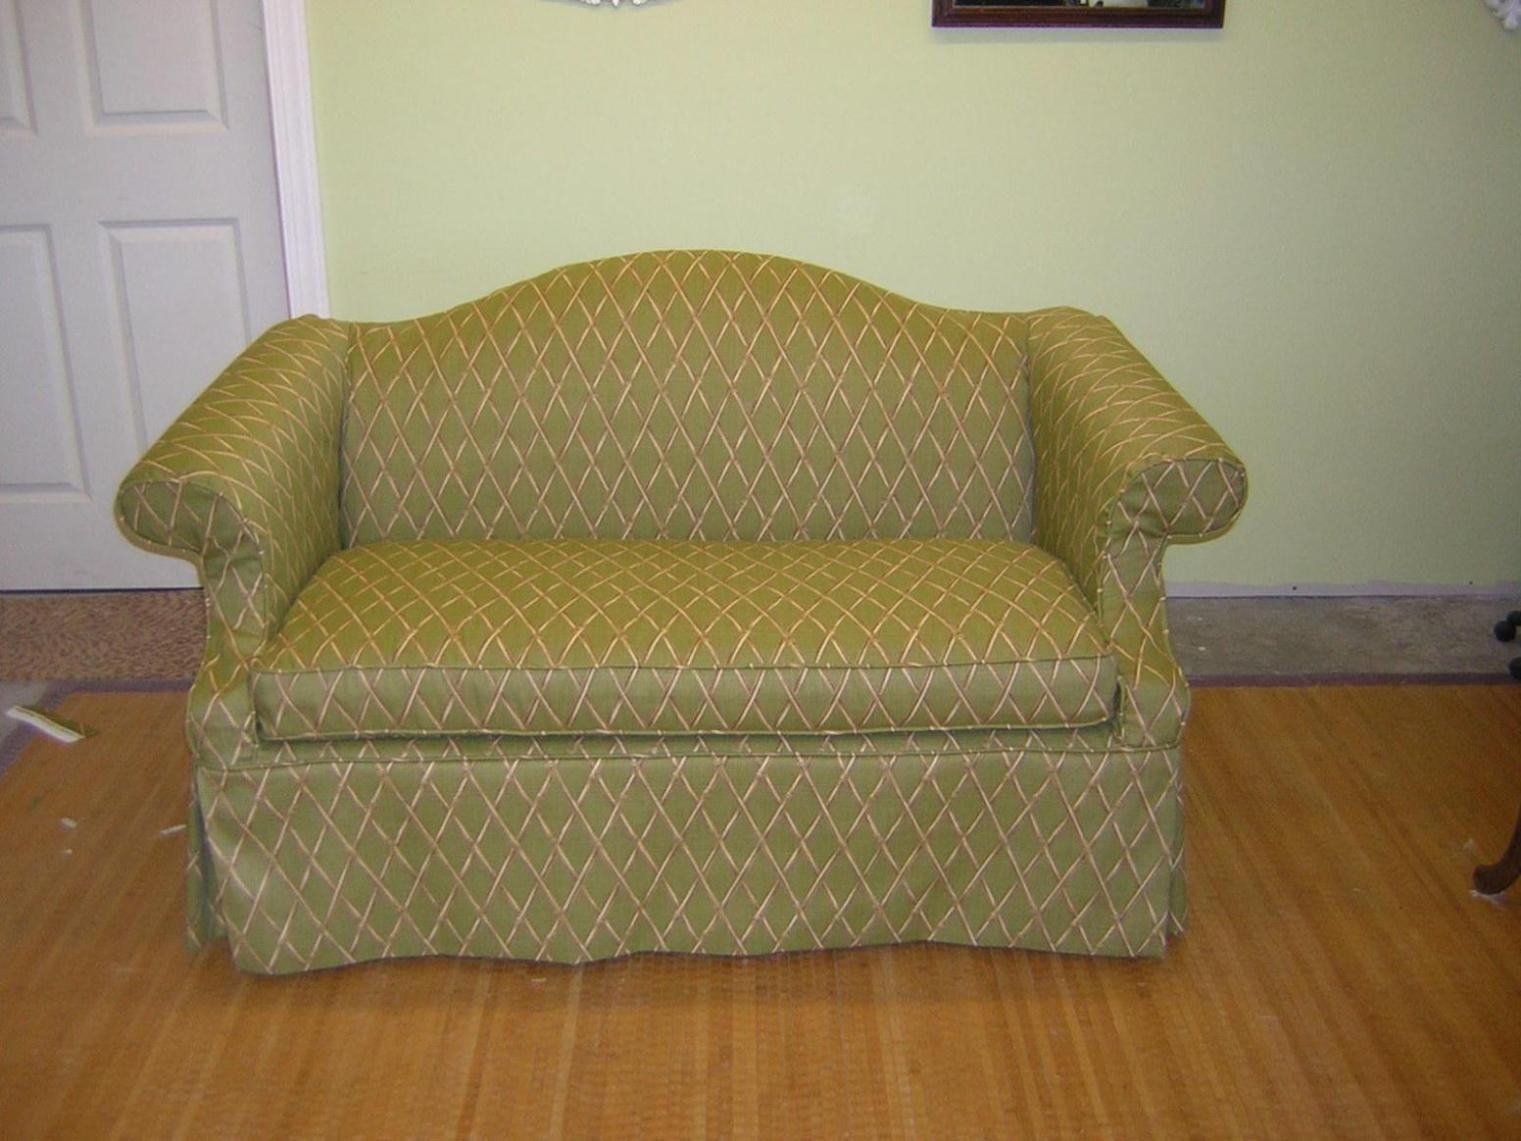 Loveseat Slipcover T Cushion : Doherty House – Contemporary Throughout Loveseat Slipcovers T Cushion (Image 12 of 20)